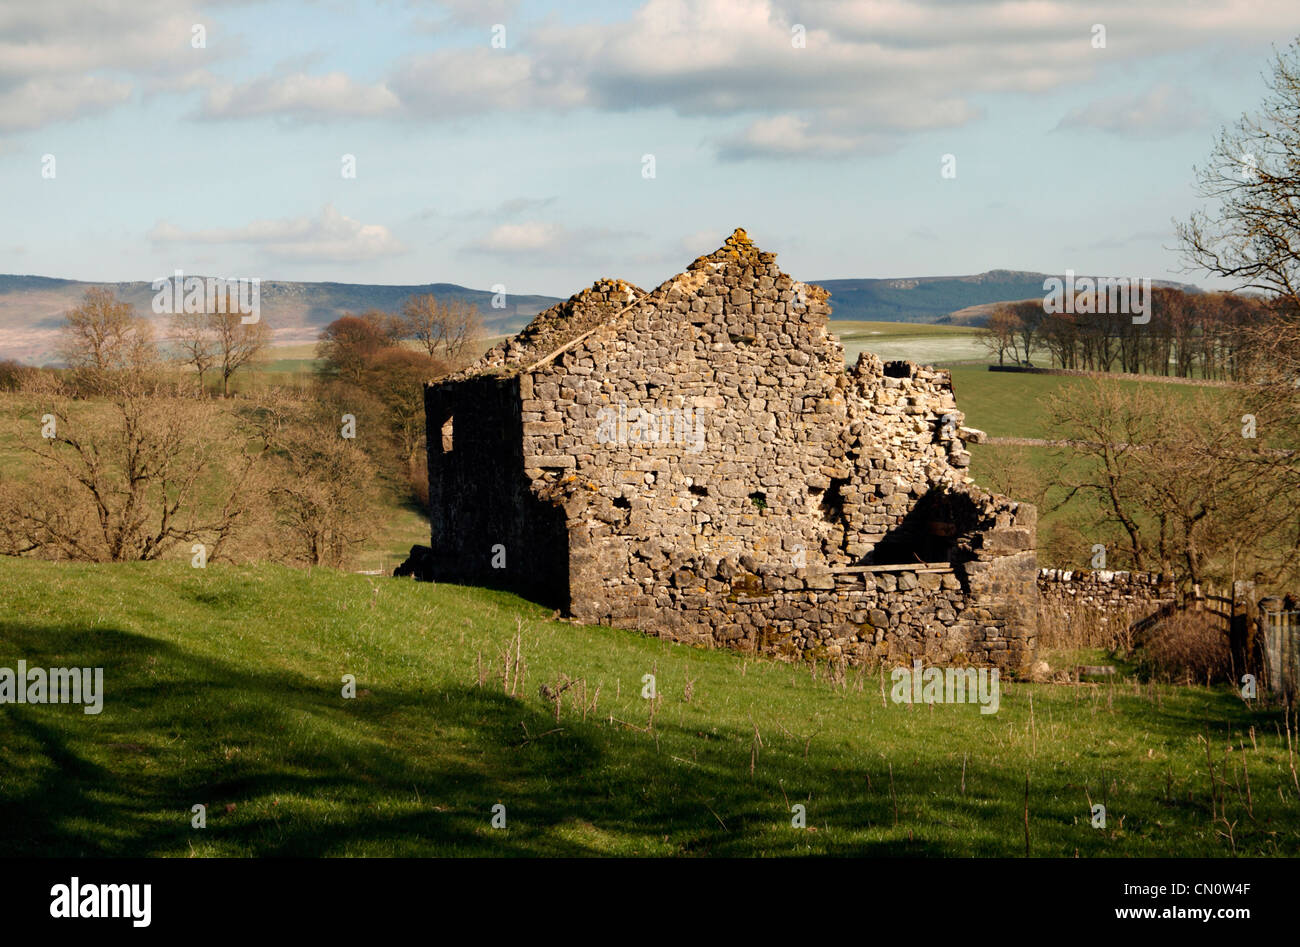 An old ruined farm house in the North Yorkshire Dales National park near Hetton - Stock Image